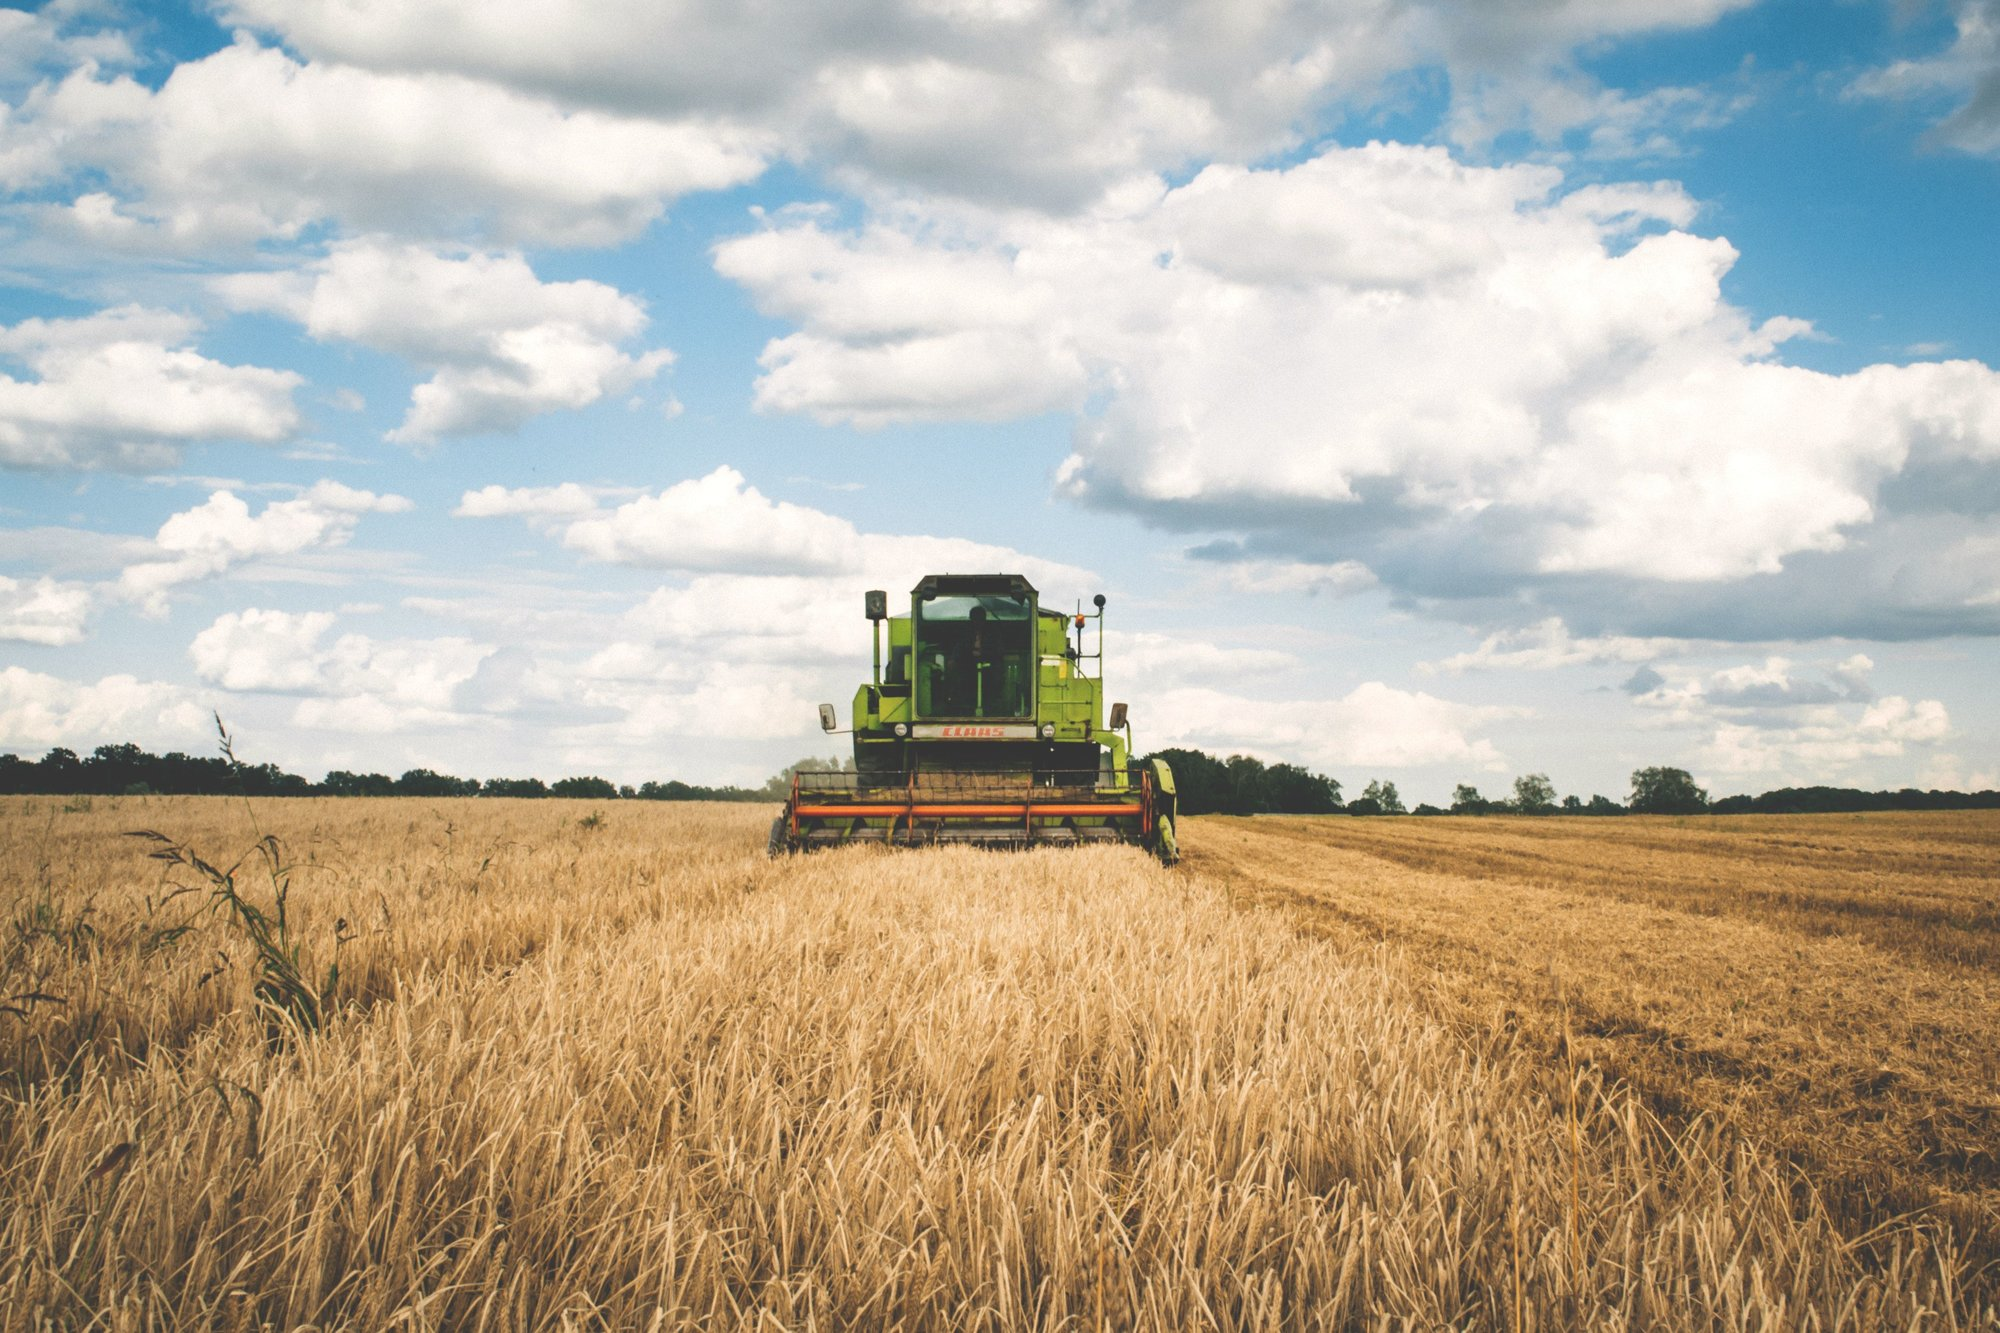 green-tractor-wheat-field-farming-2020